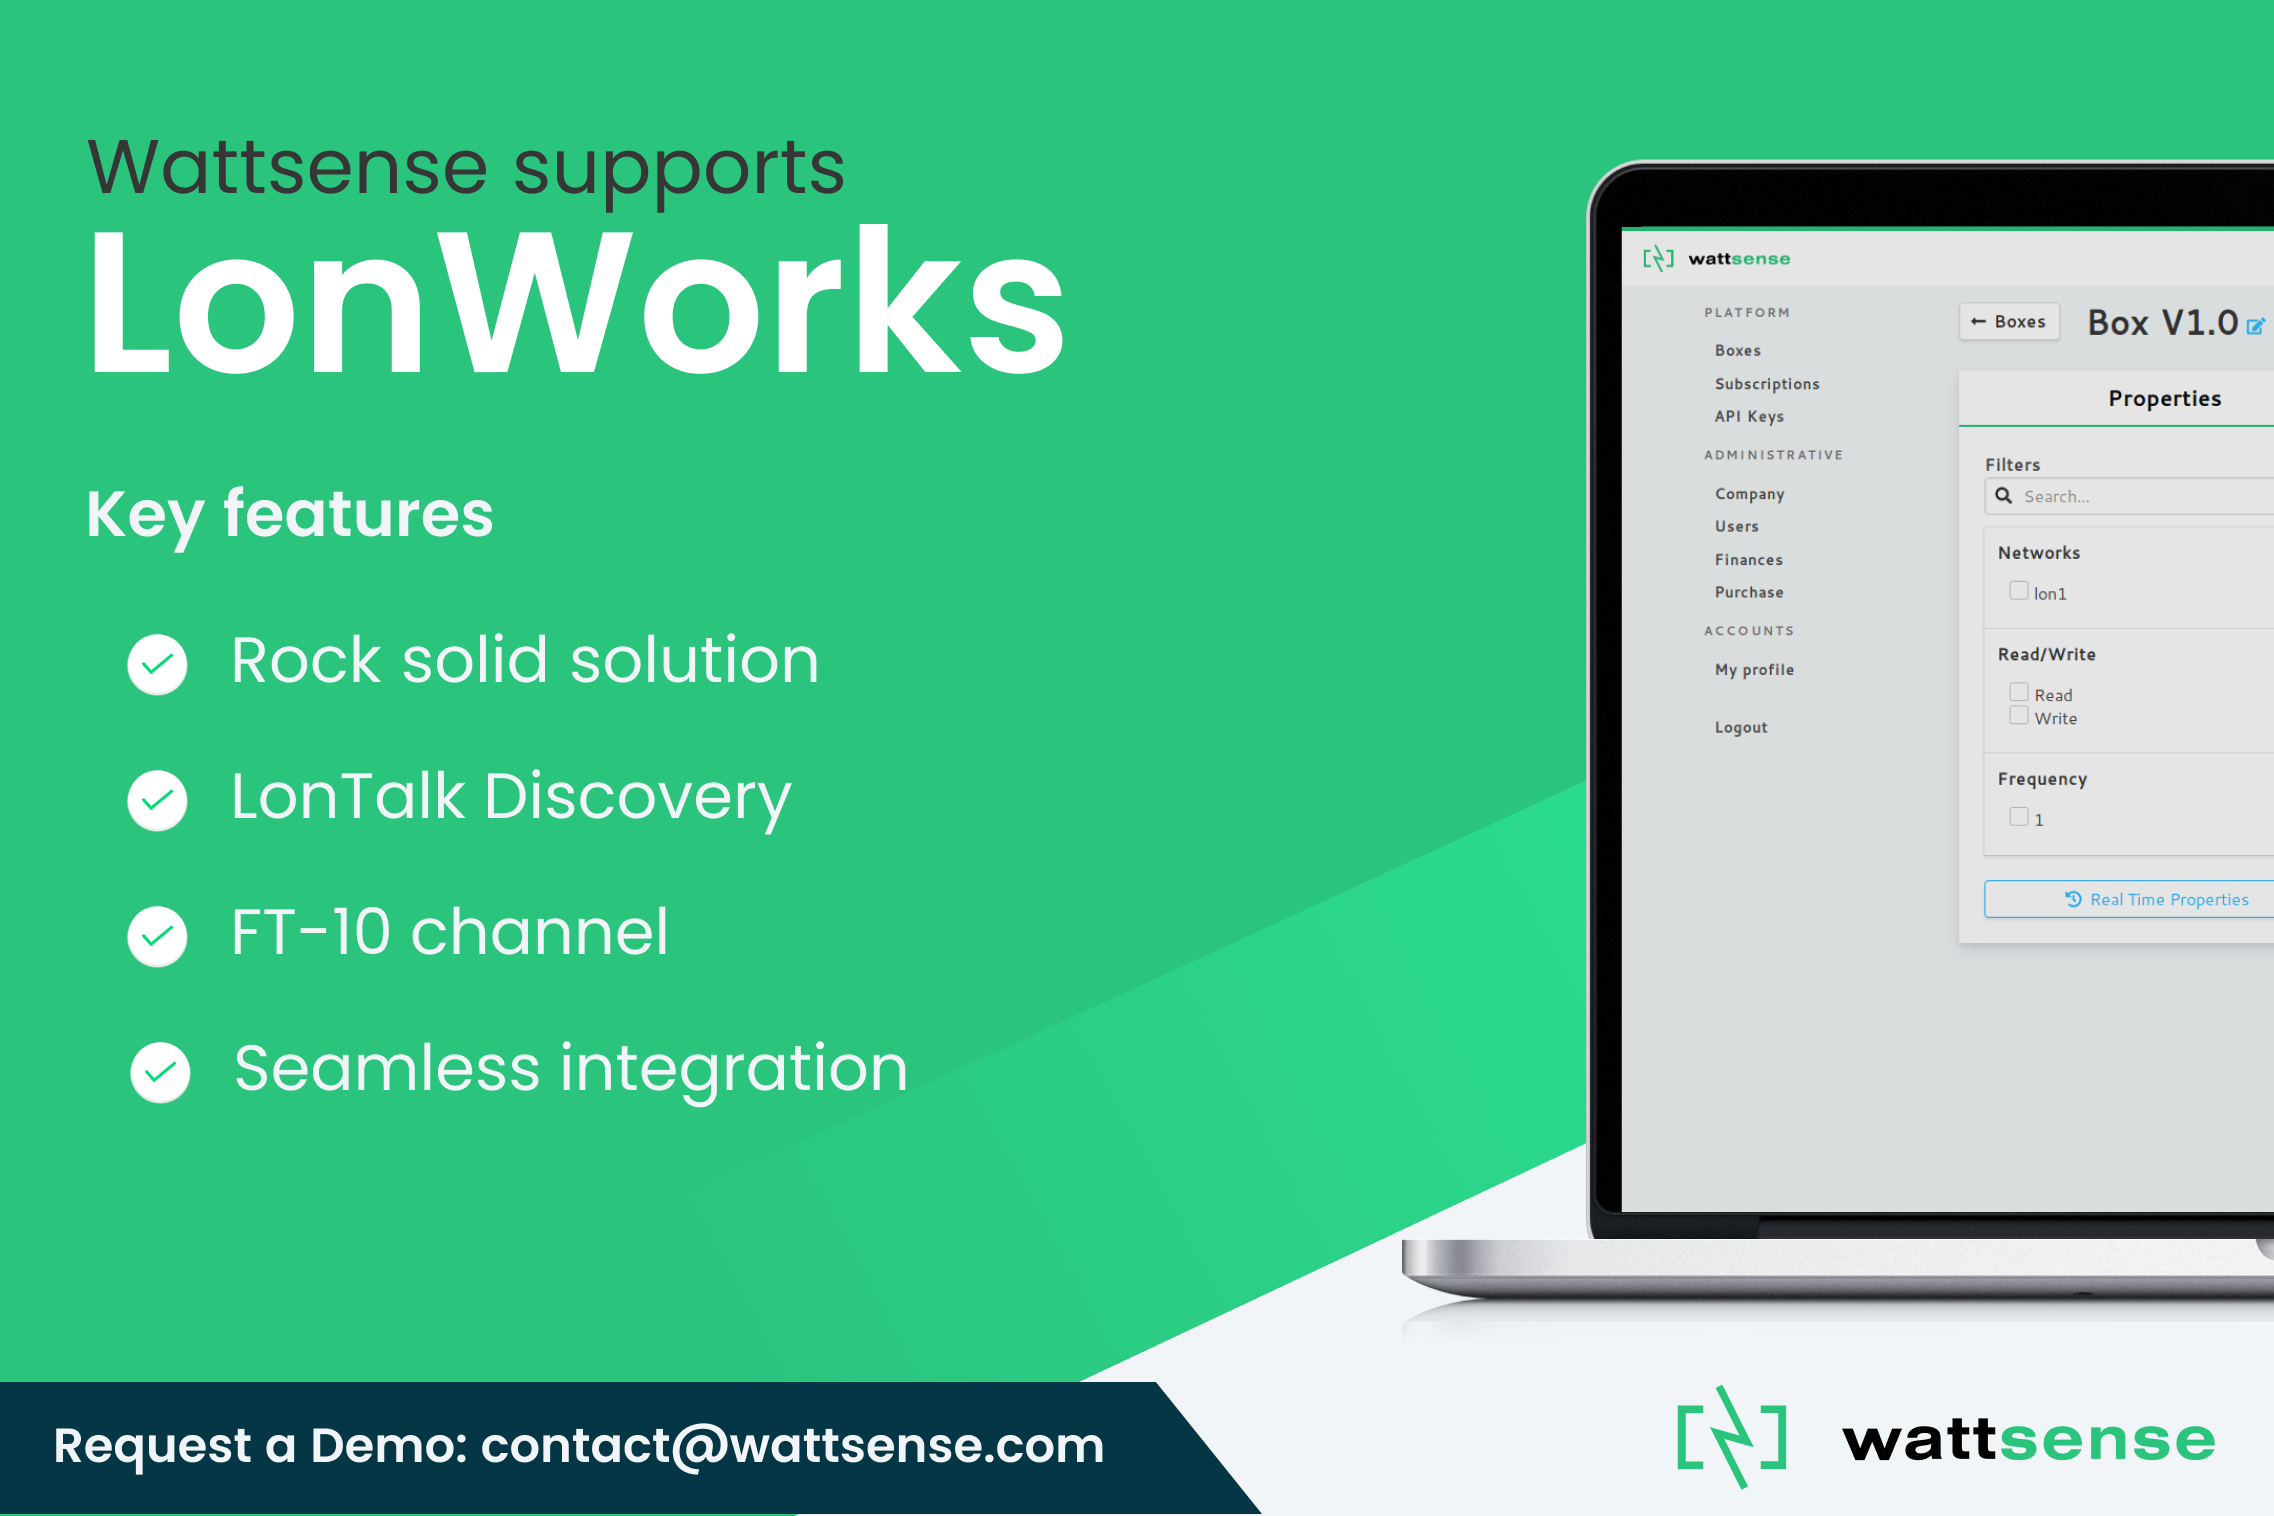 Easily connect to LonWorks using the Wattsense service